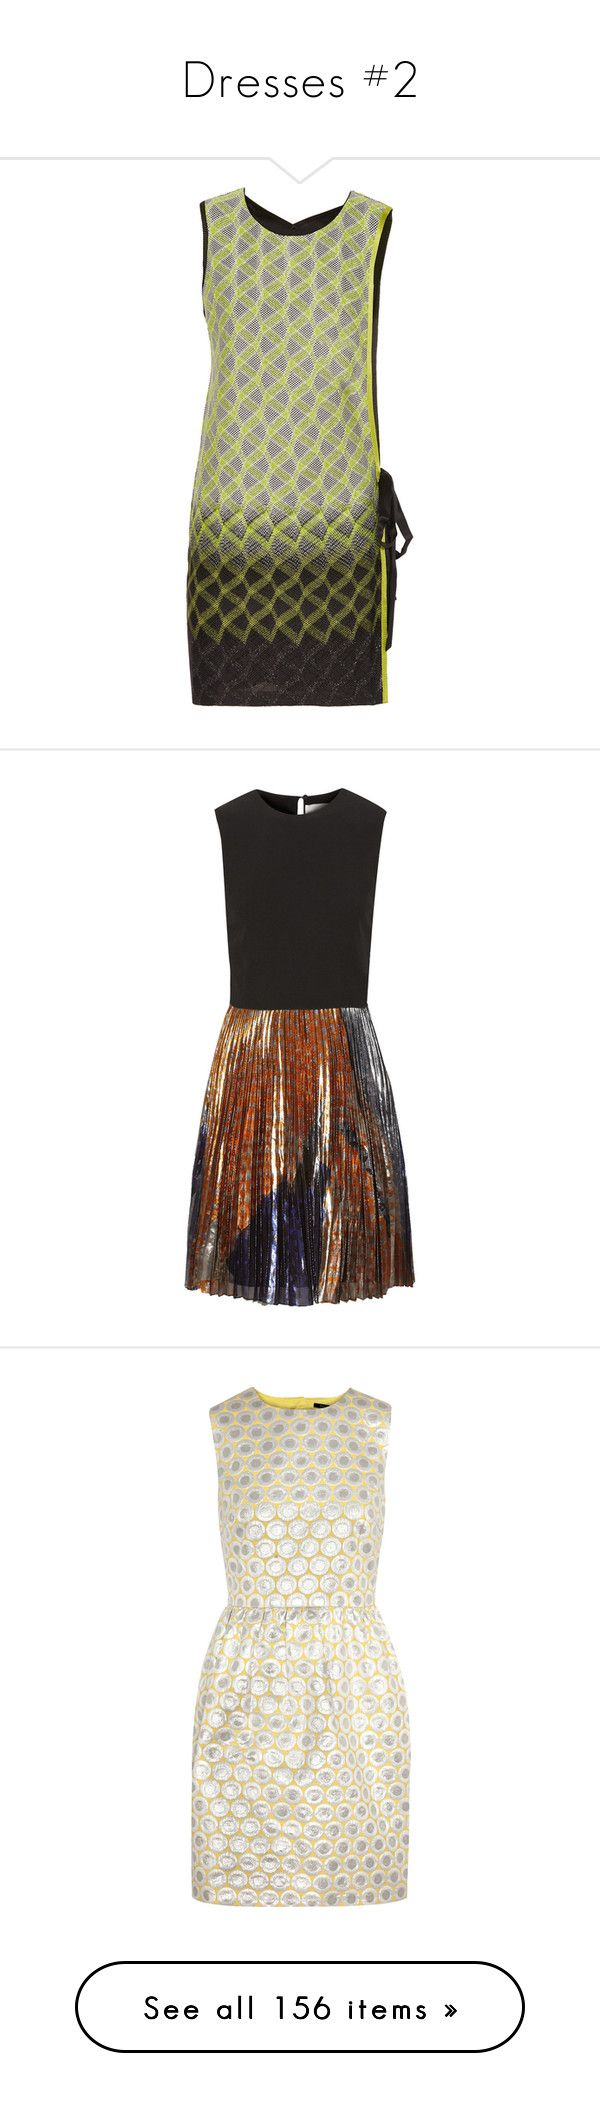 """""""Dresses #2"""" by klm62 ❤ liked on Polyvore featuring dresses, green, short colorful dresses, missoni dress, short metallic dress, metallic mini dress, metallic dress, black, multi colored dress and lame dress"""